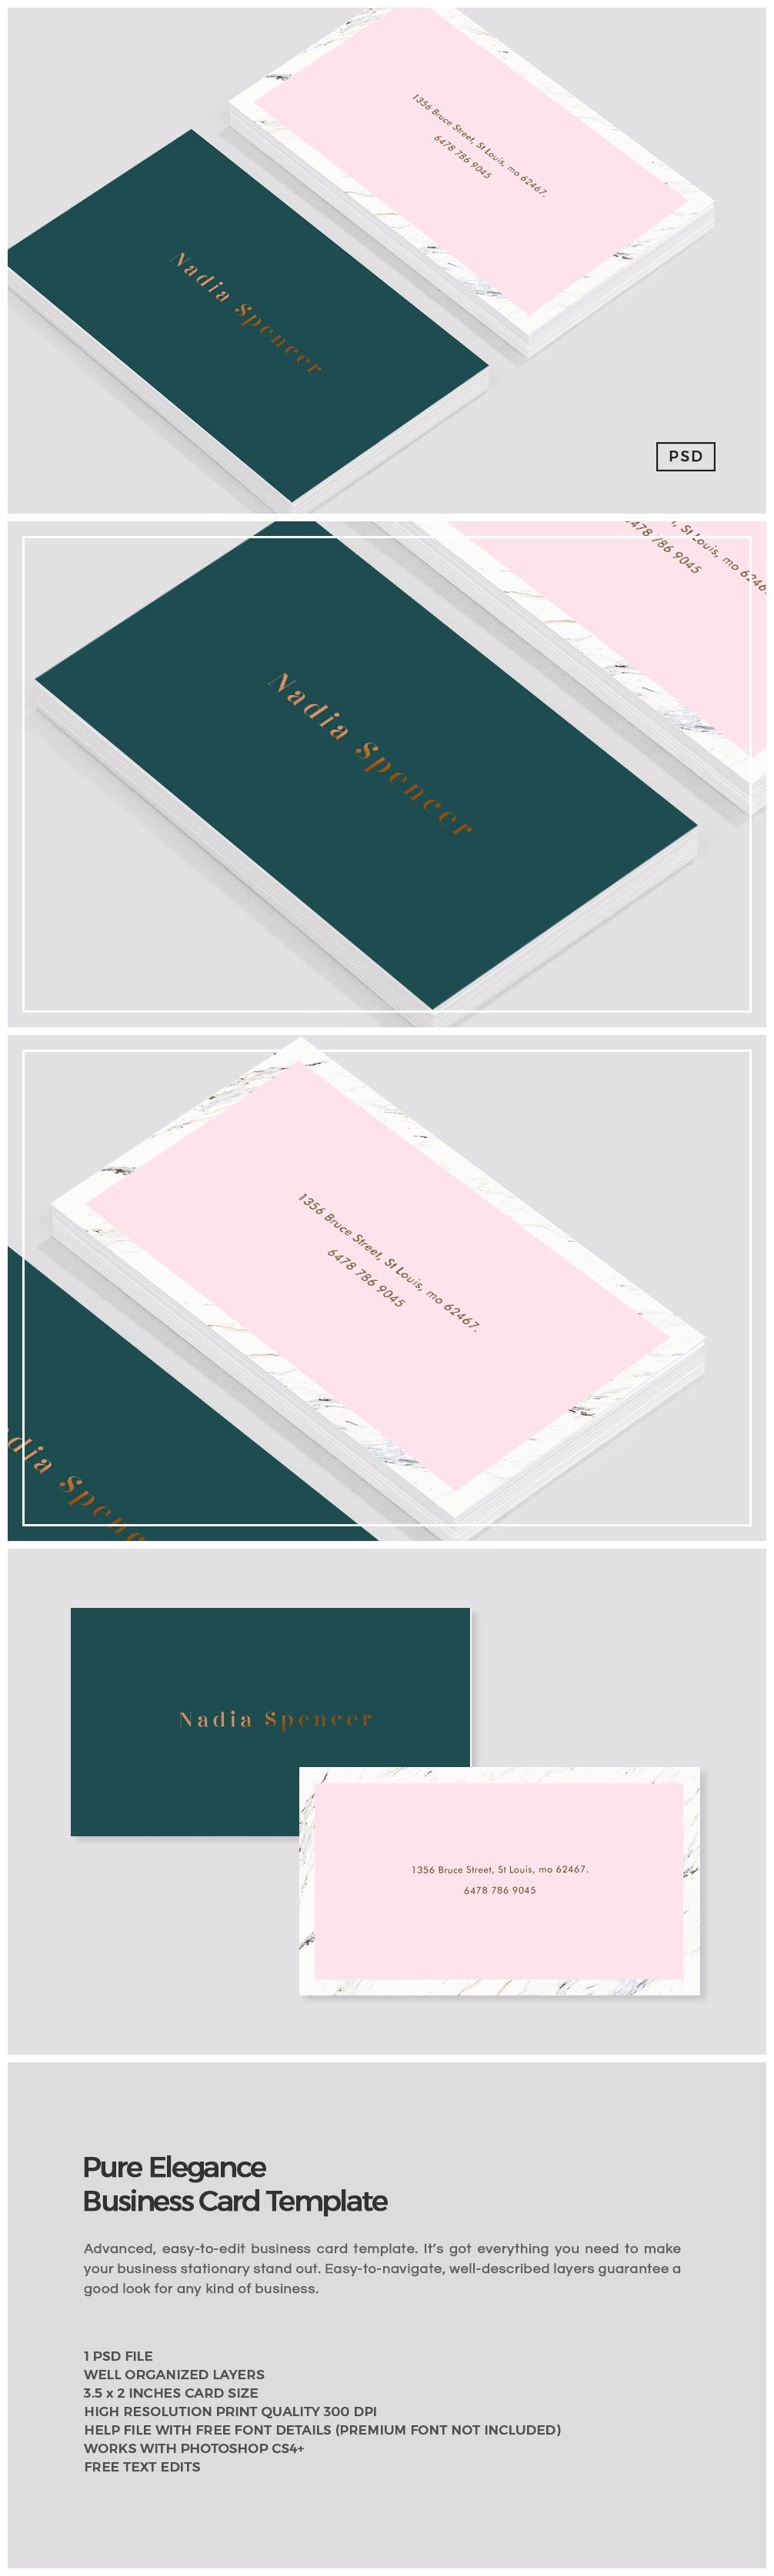 Pure elegance business card template business card templates pure elegance business card template business card templates creative market reheart Gallery